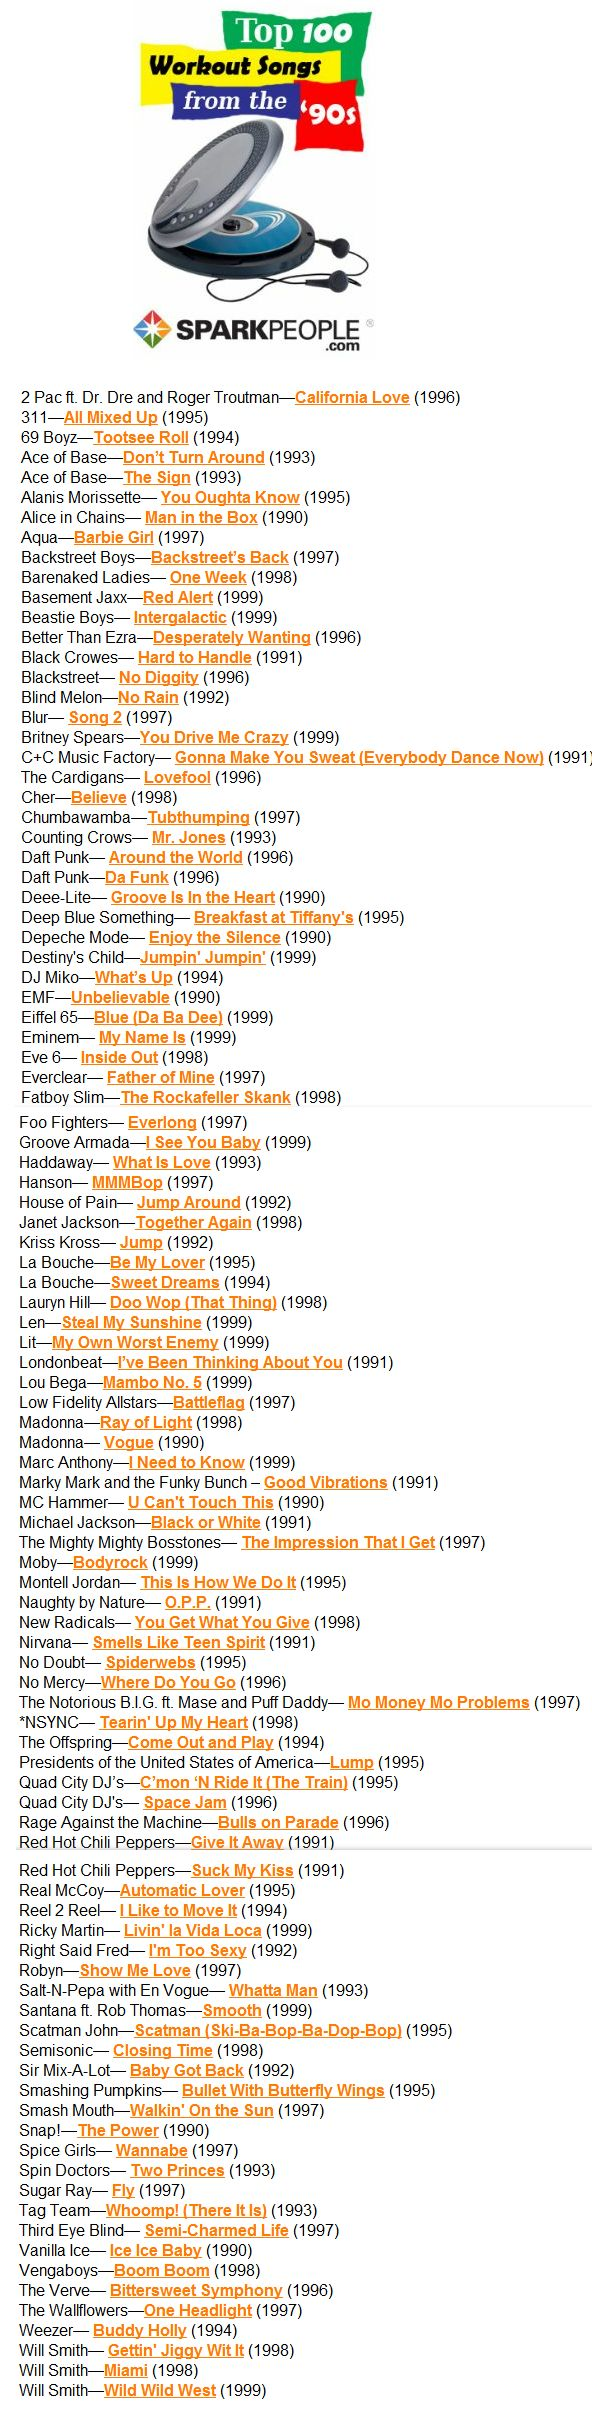 He 100 best workout songs from the 90s http www